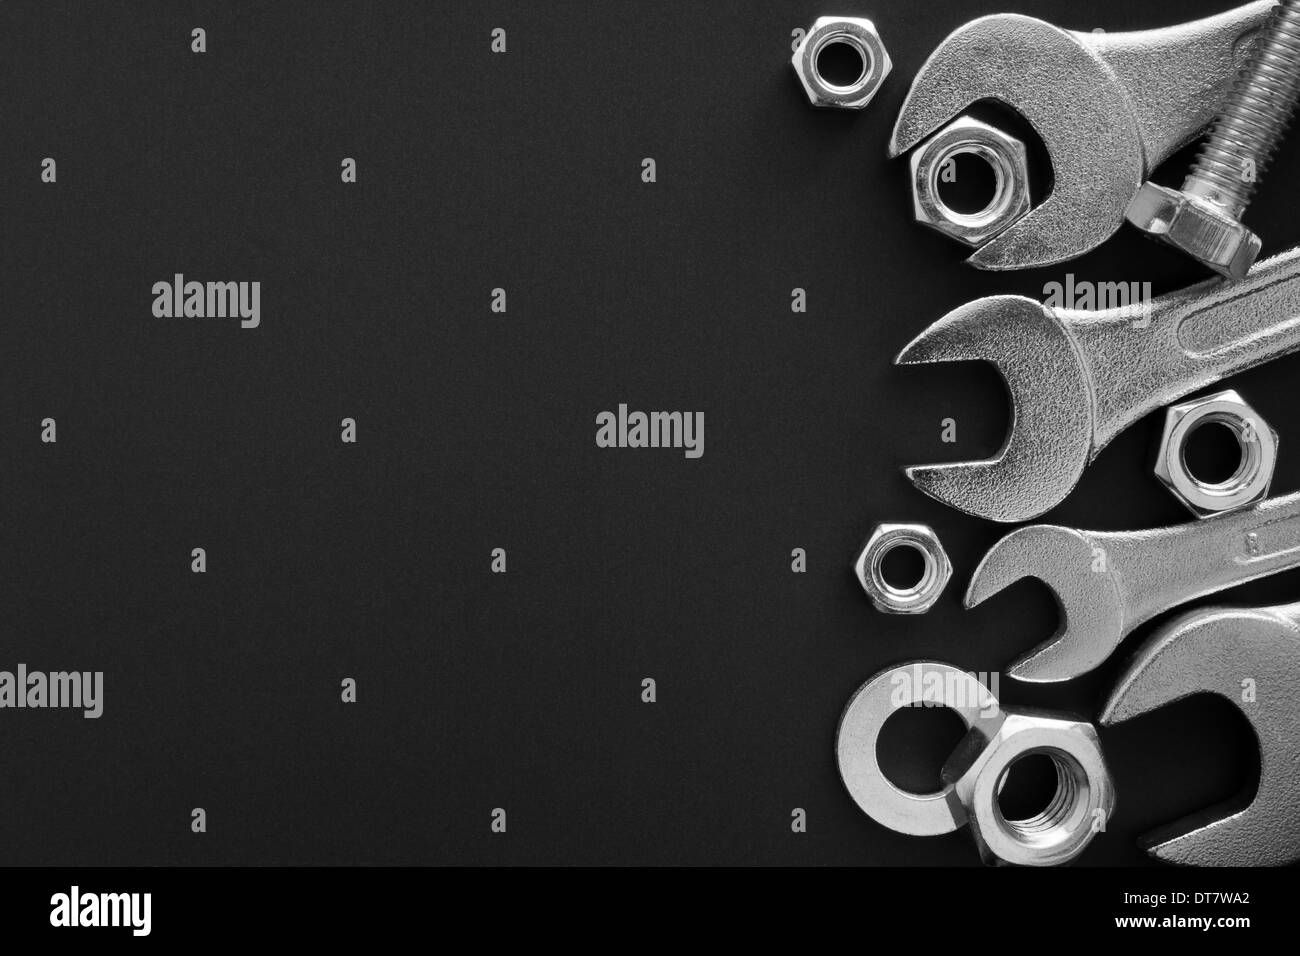 Wrench tools on dark background. Empty space for Your text - Stock Image